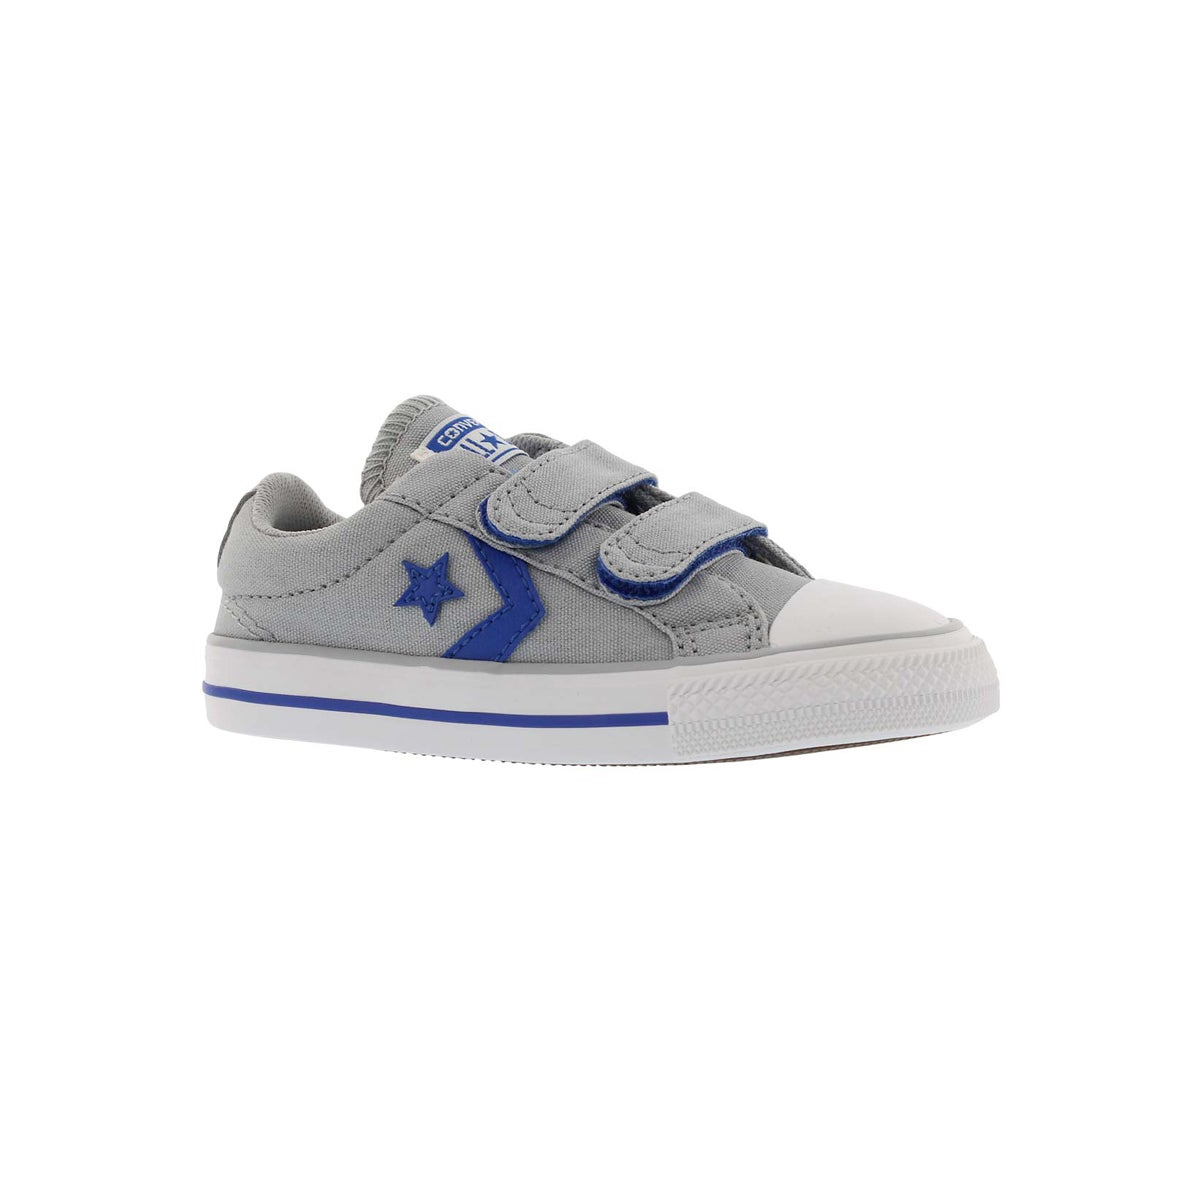 Infants' STAR PLAYER 2V gry/blu/wt sneakers